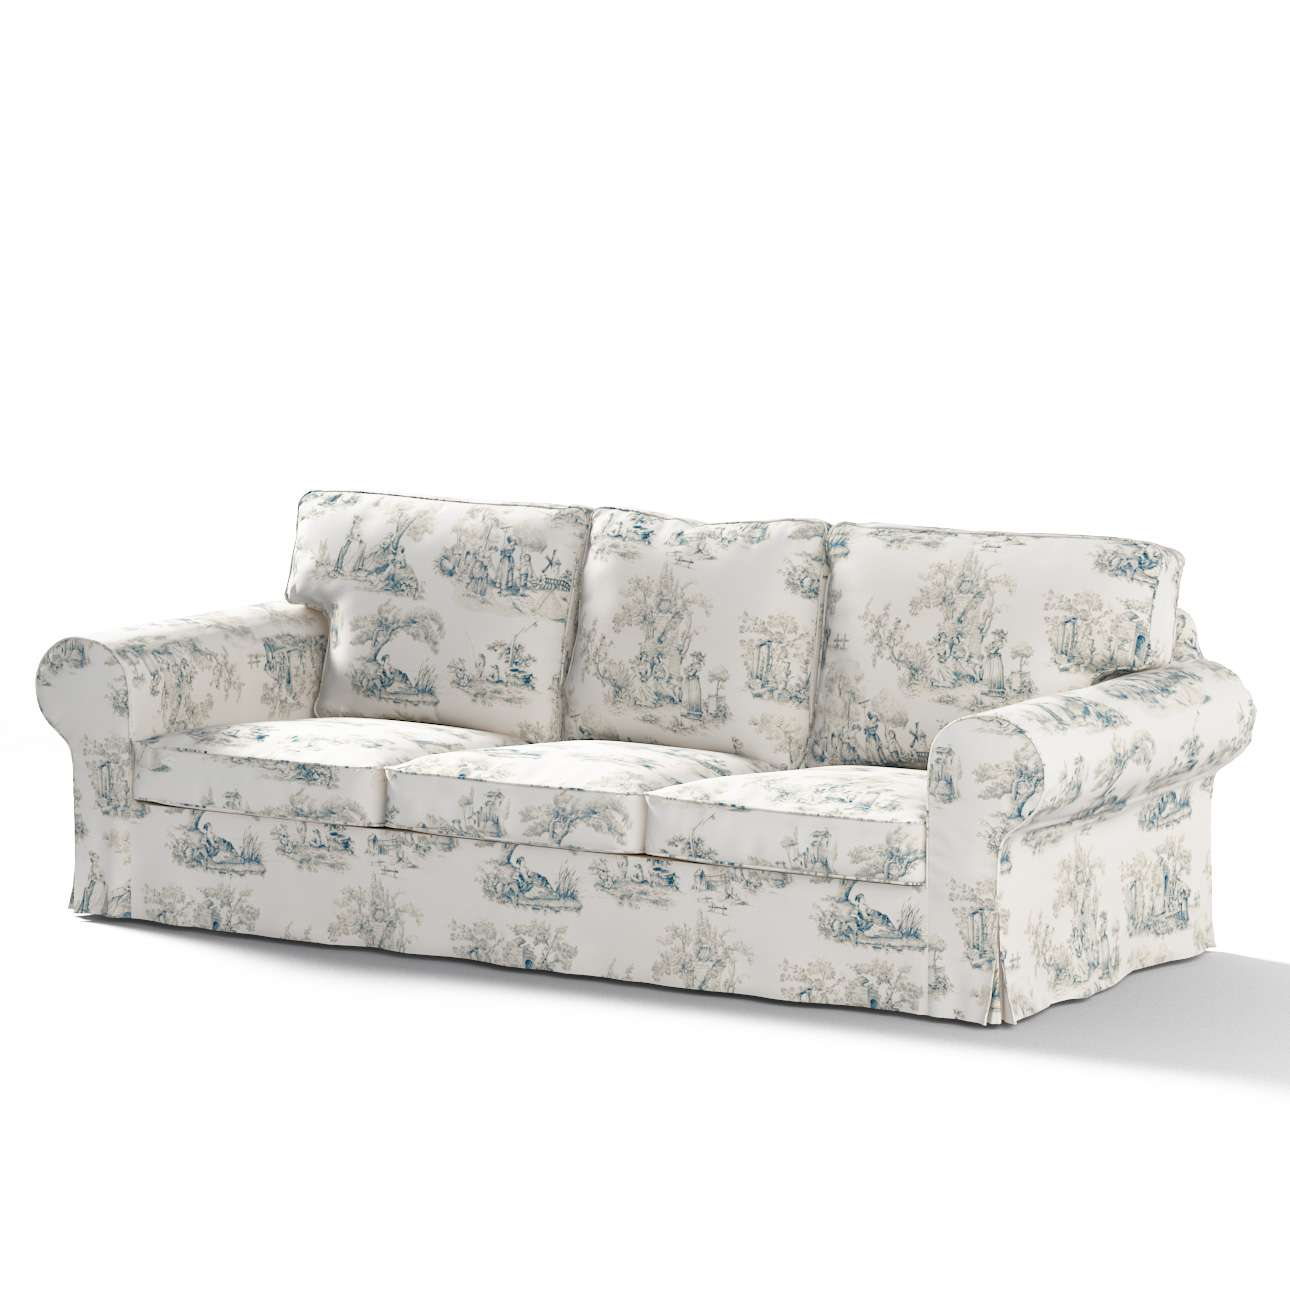 Superbe Ektorp 3 Seater Sofa Bed Cover (for Model On Sale In Ikea 2004